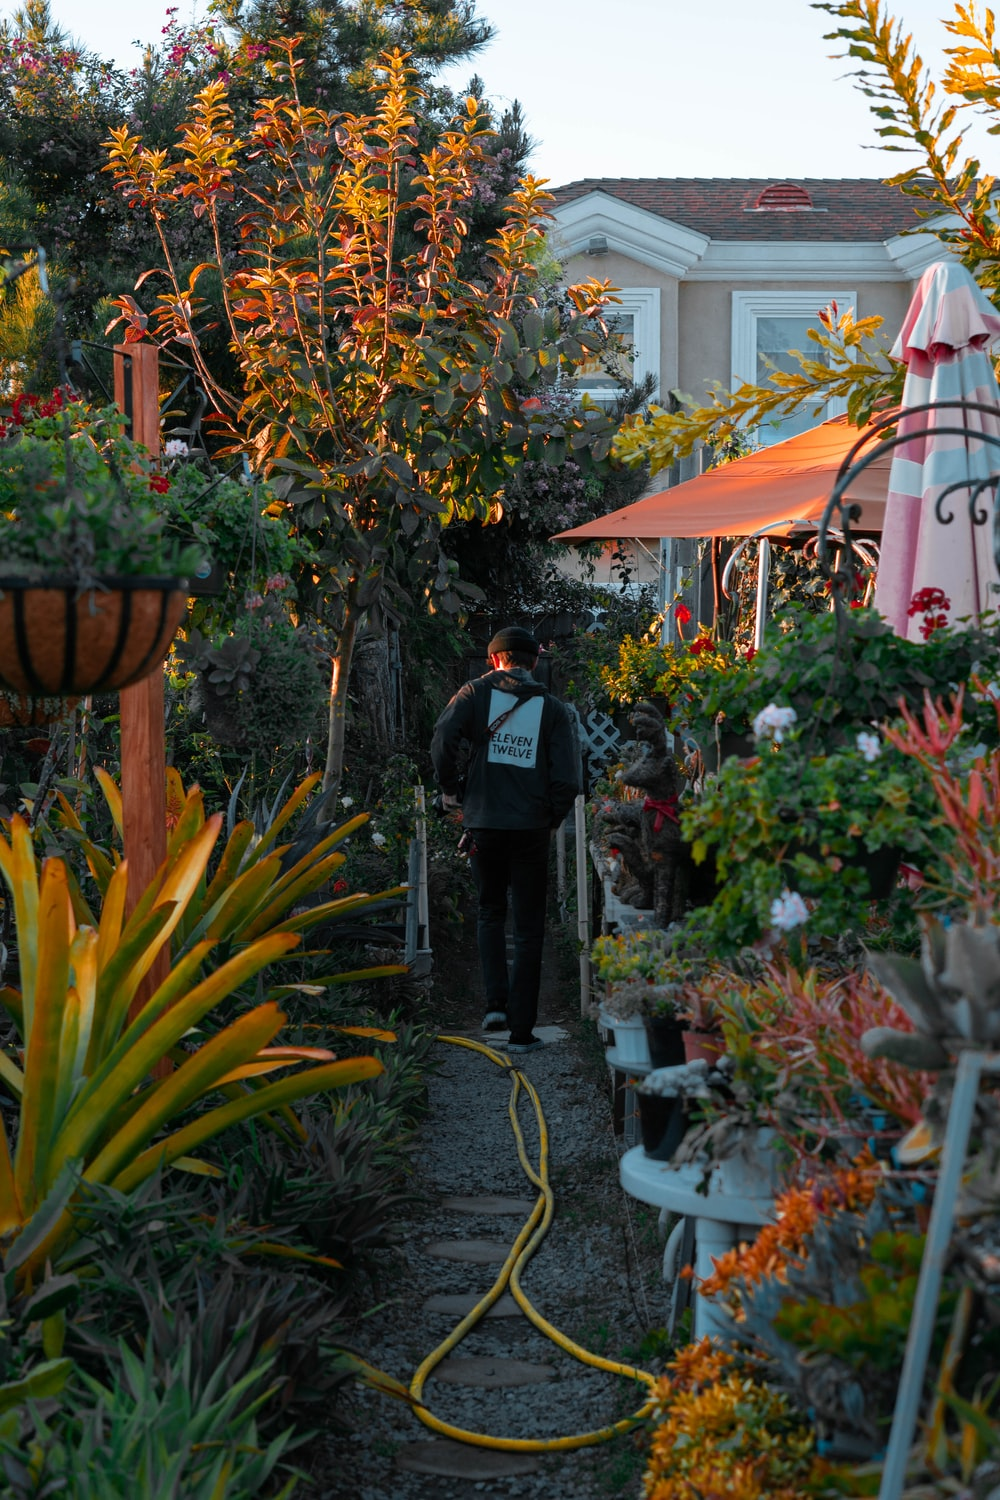 man in black jacket standing near green plants during daytime